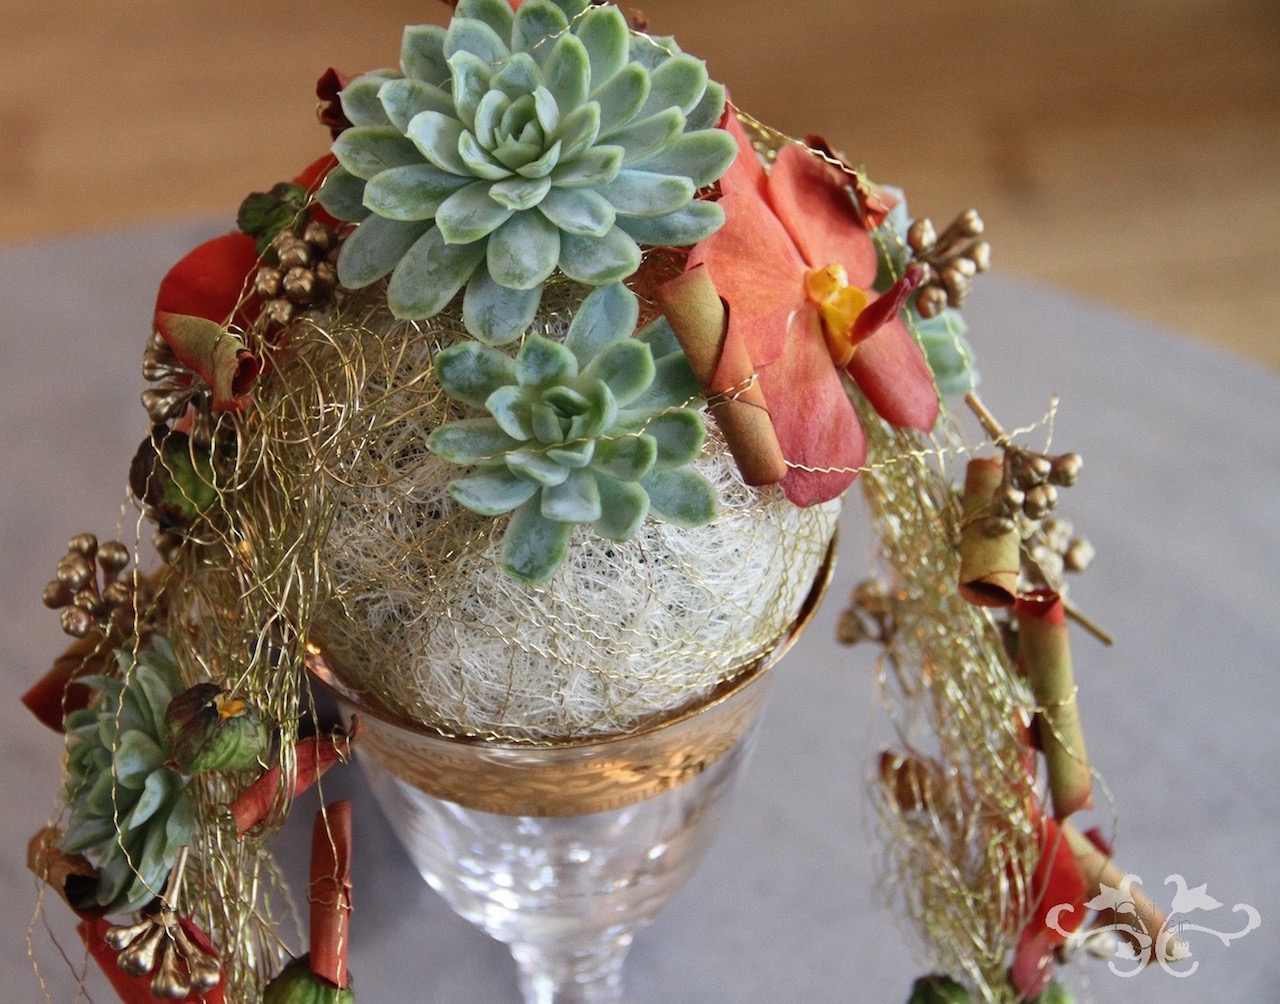 Succulents, Vanda Orchids, rolled petals and accessories make this hand-held pomander a fashion statement of great beauty